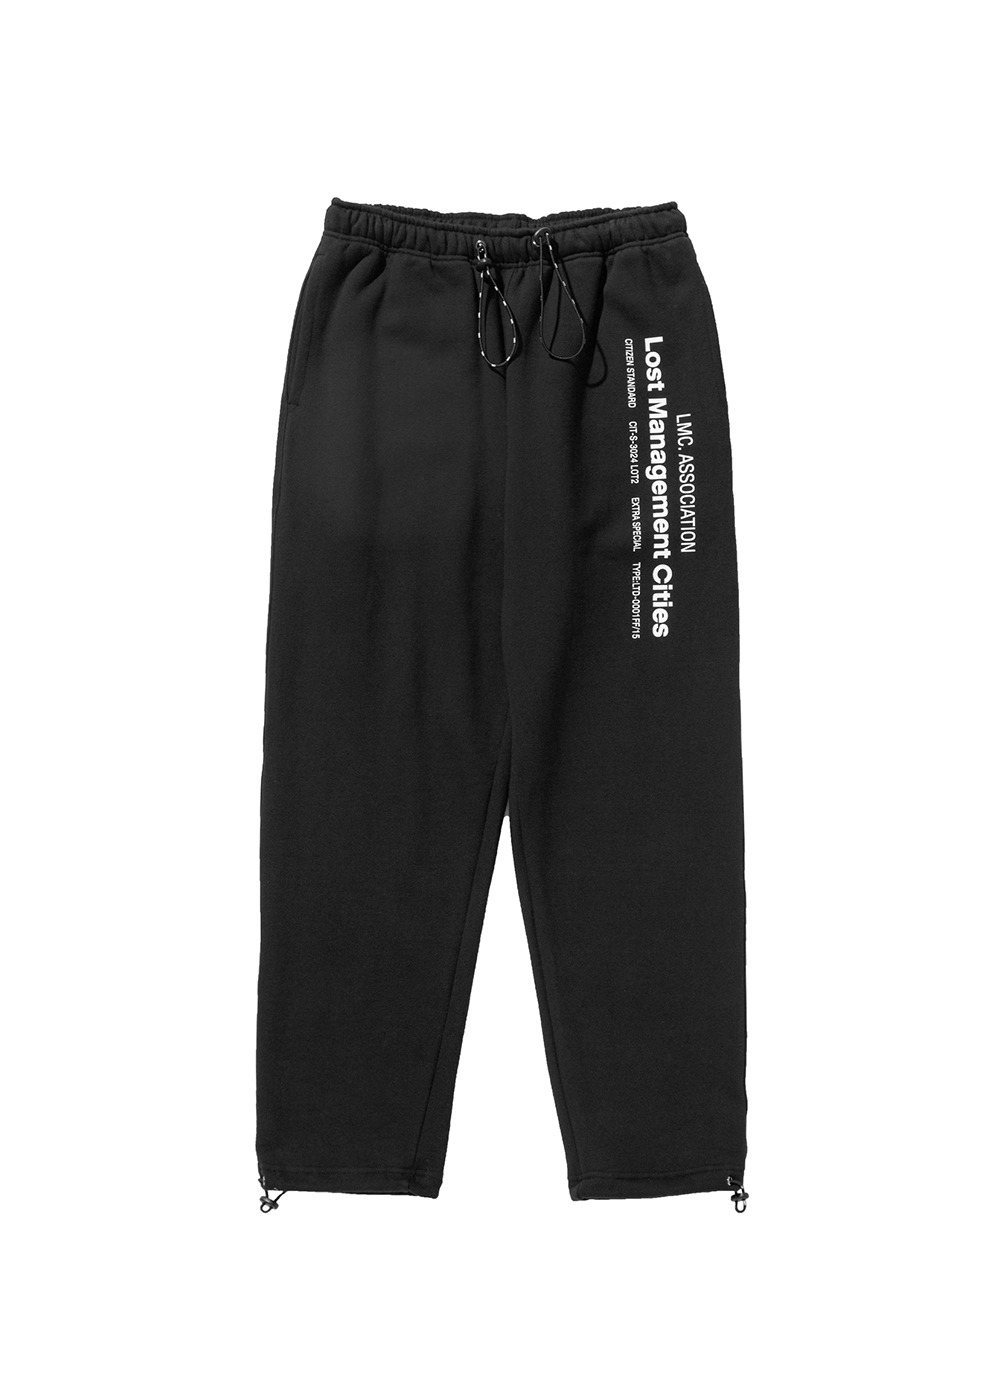 LMC MIL SWEAT PANTS black